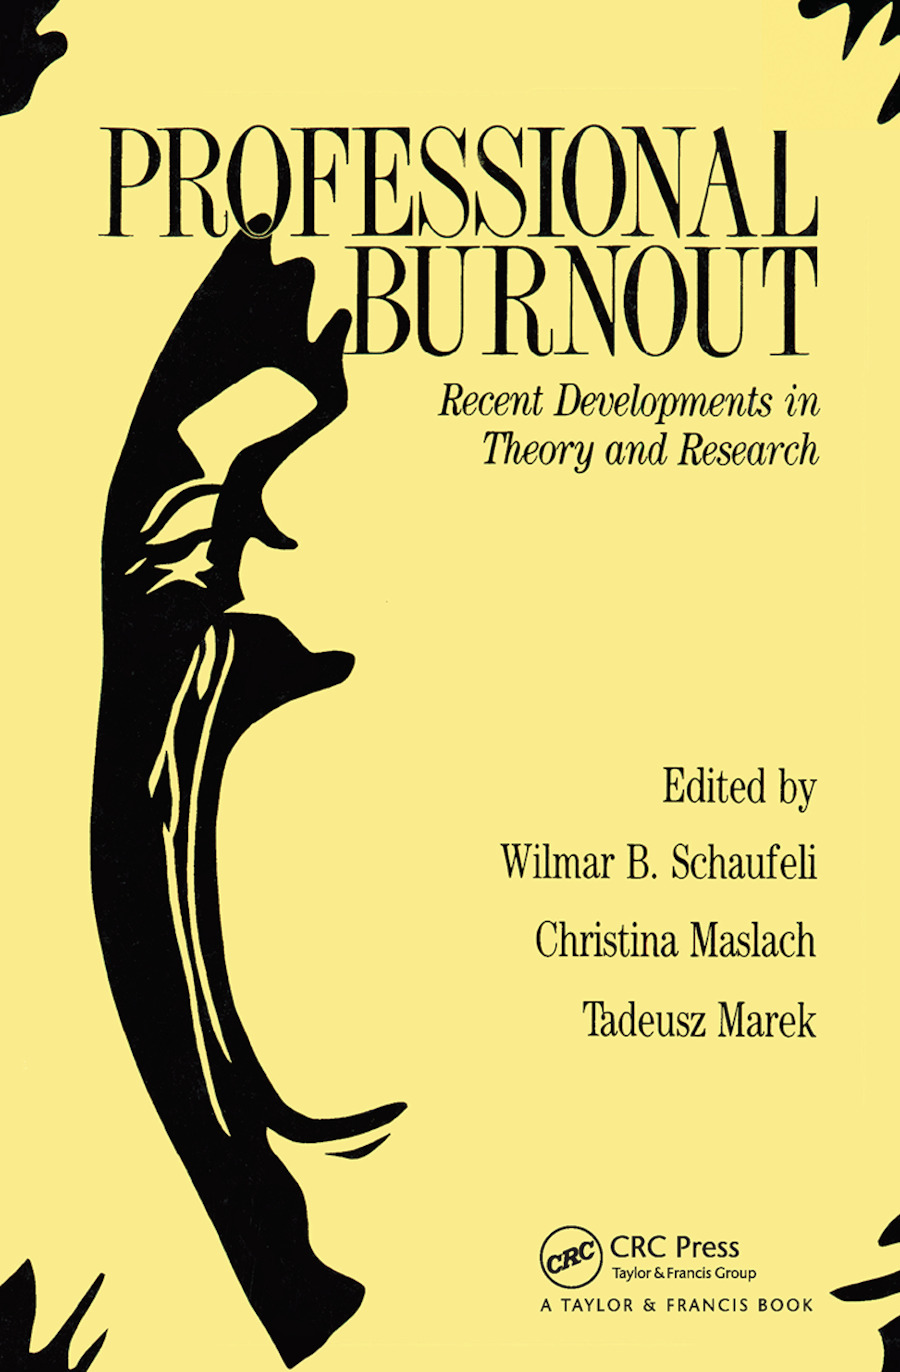 In Search of Theory: Some Ruminations on the Nature and Etiology of Burnout